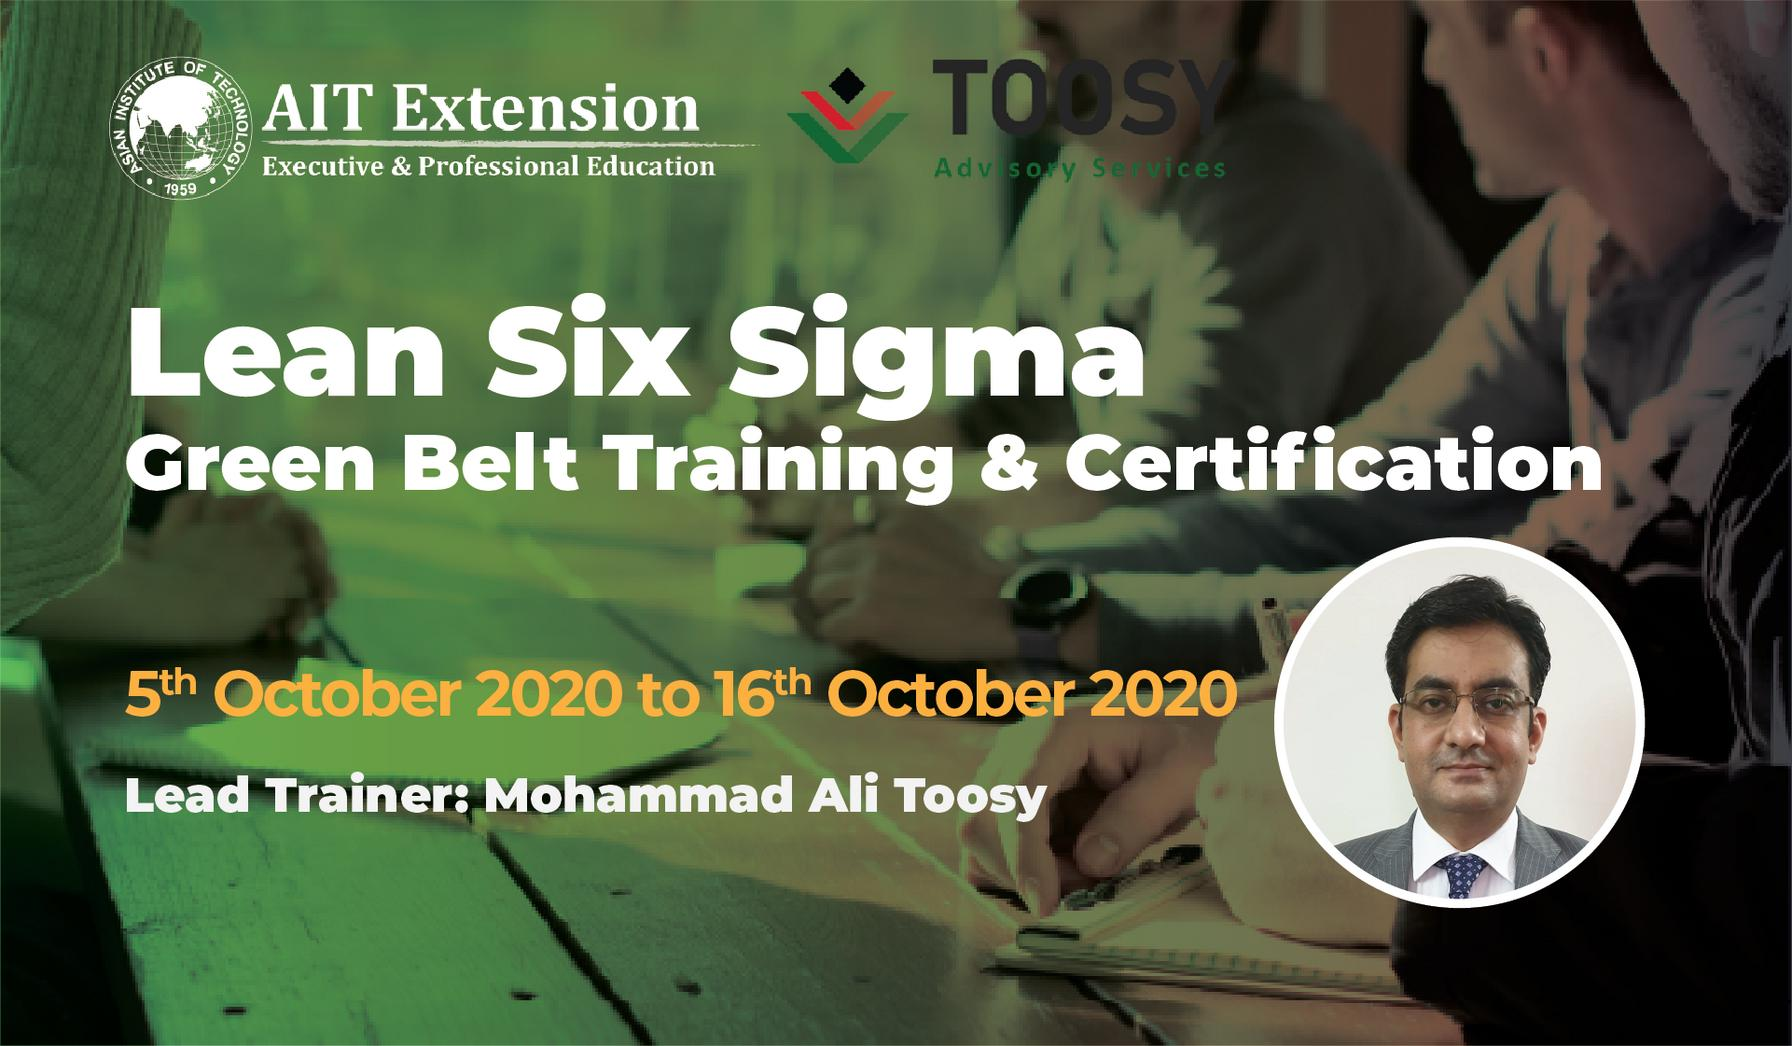 2-Lean Six Sigma Green Belt_Banner_5 Oct- 16 Oct 2020